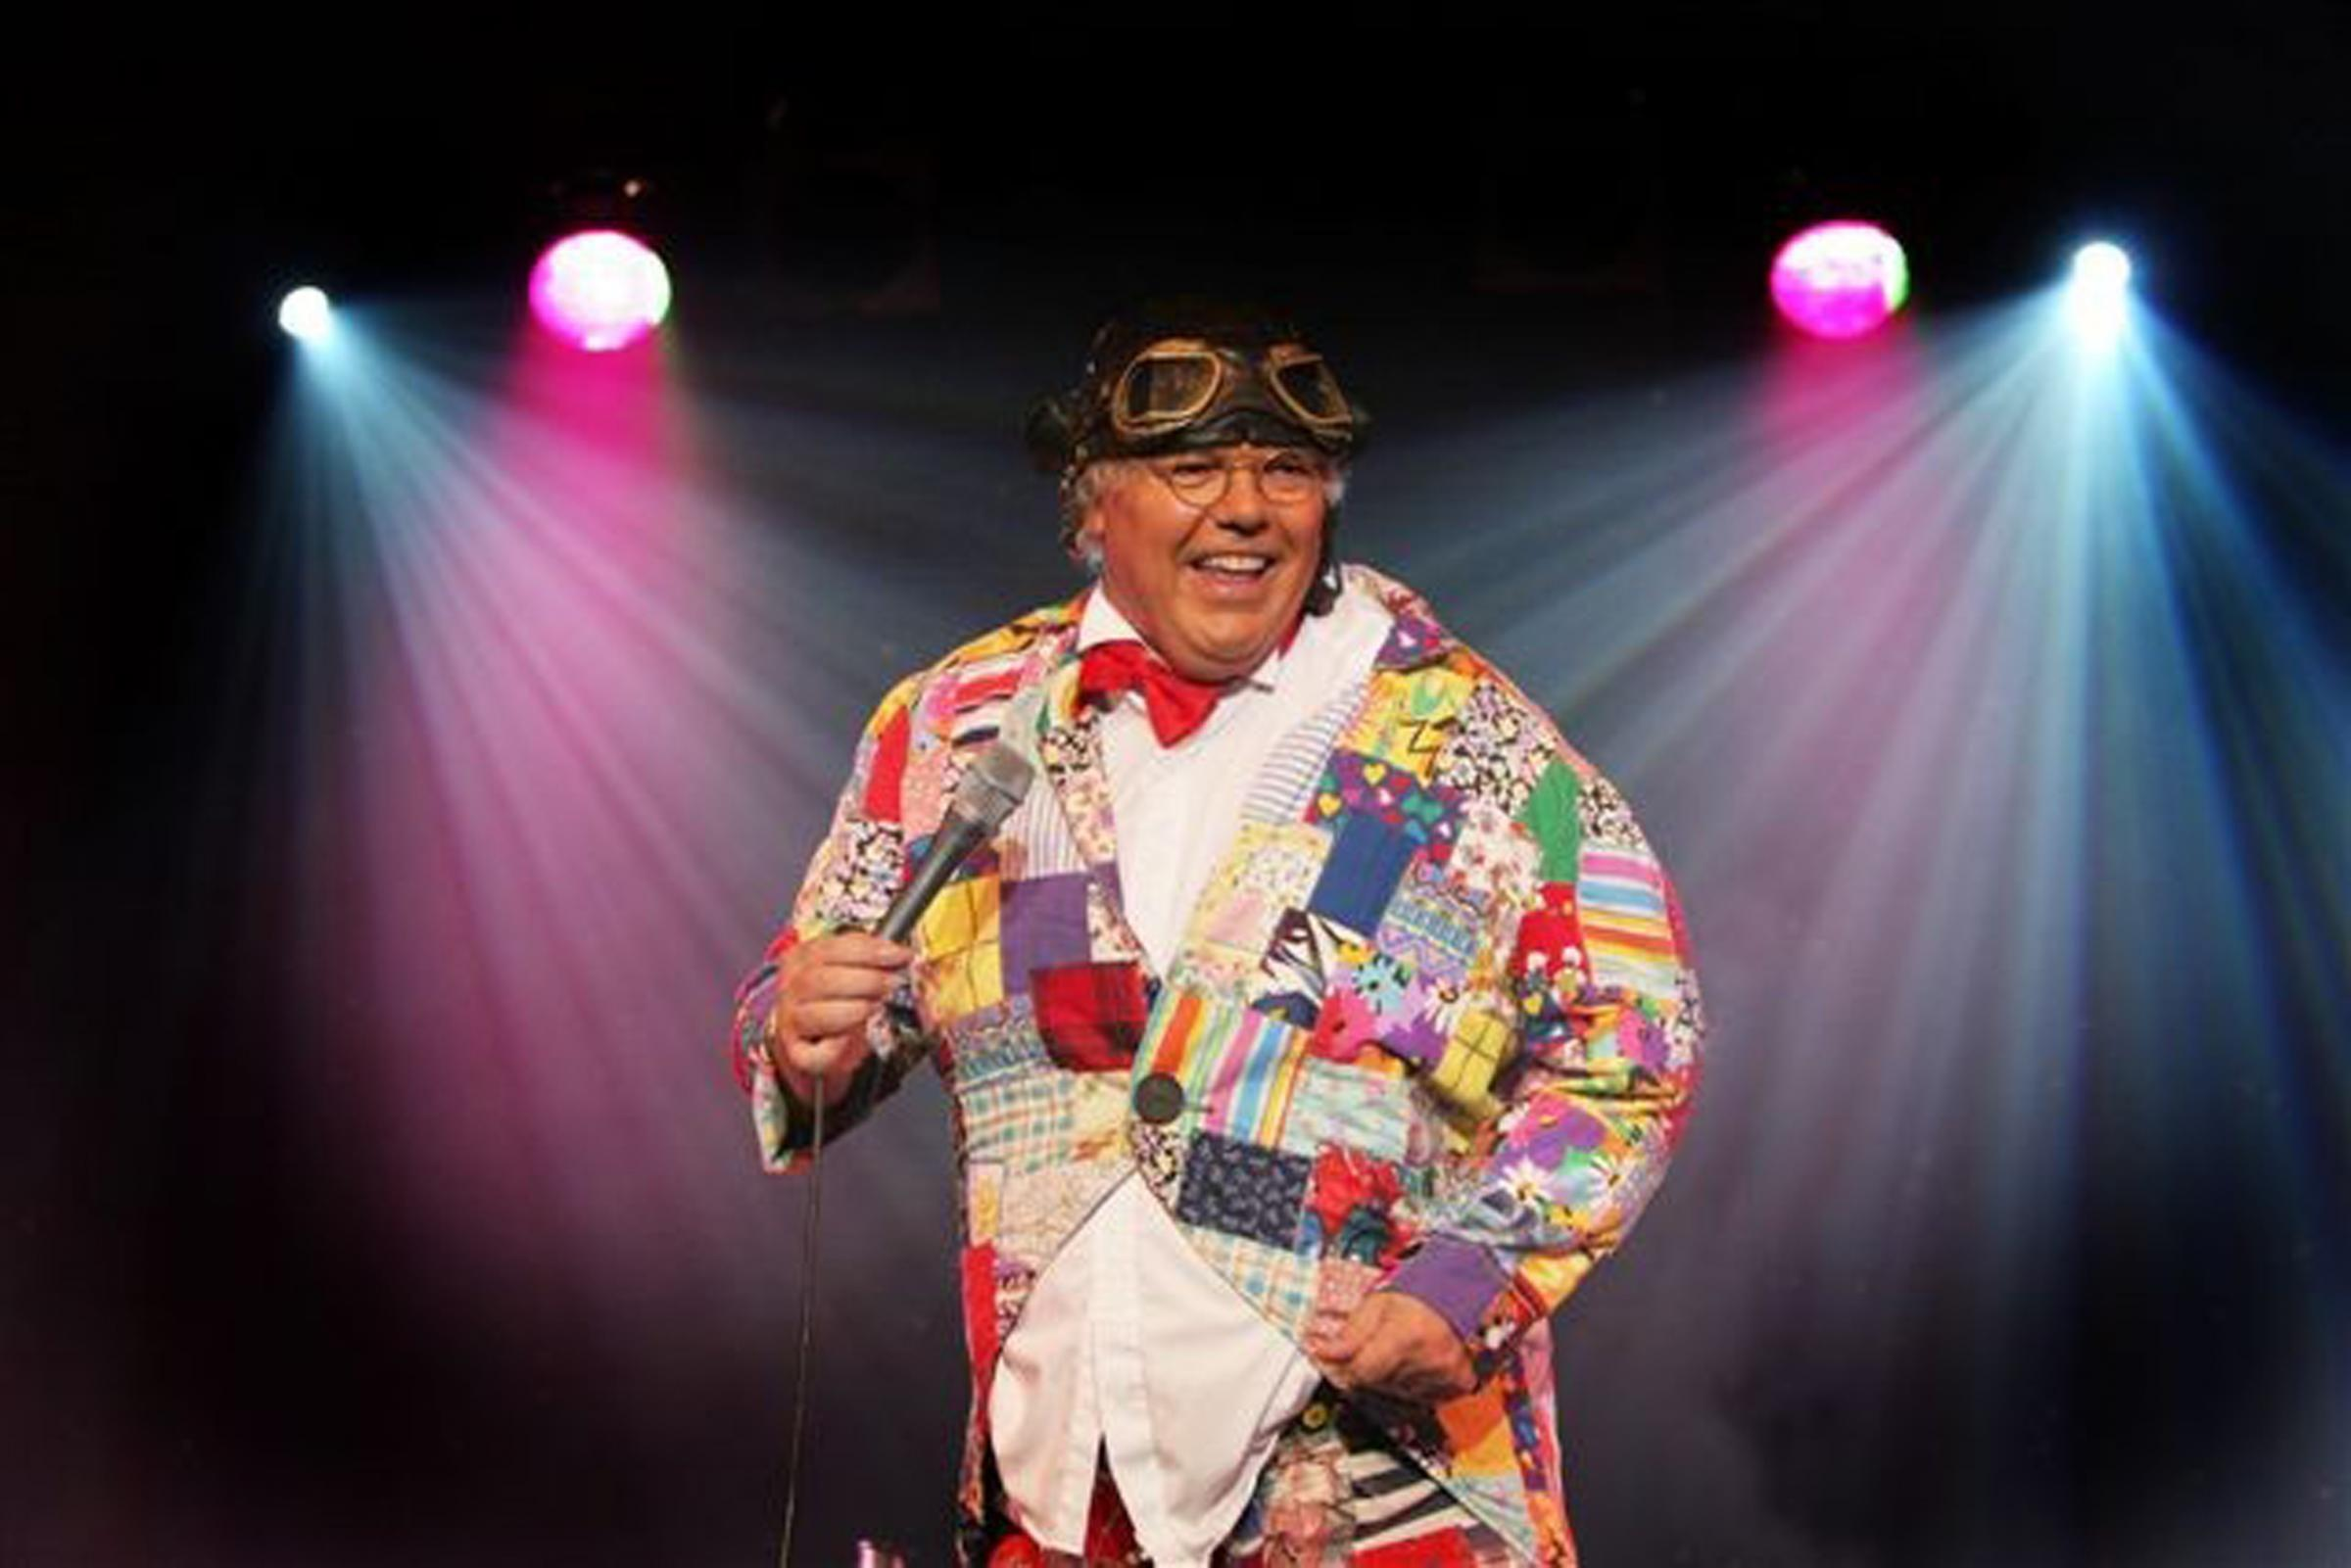 Snickers reccomend Roy chubby brown stage dates